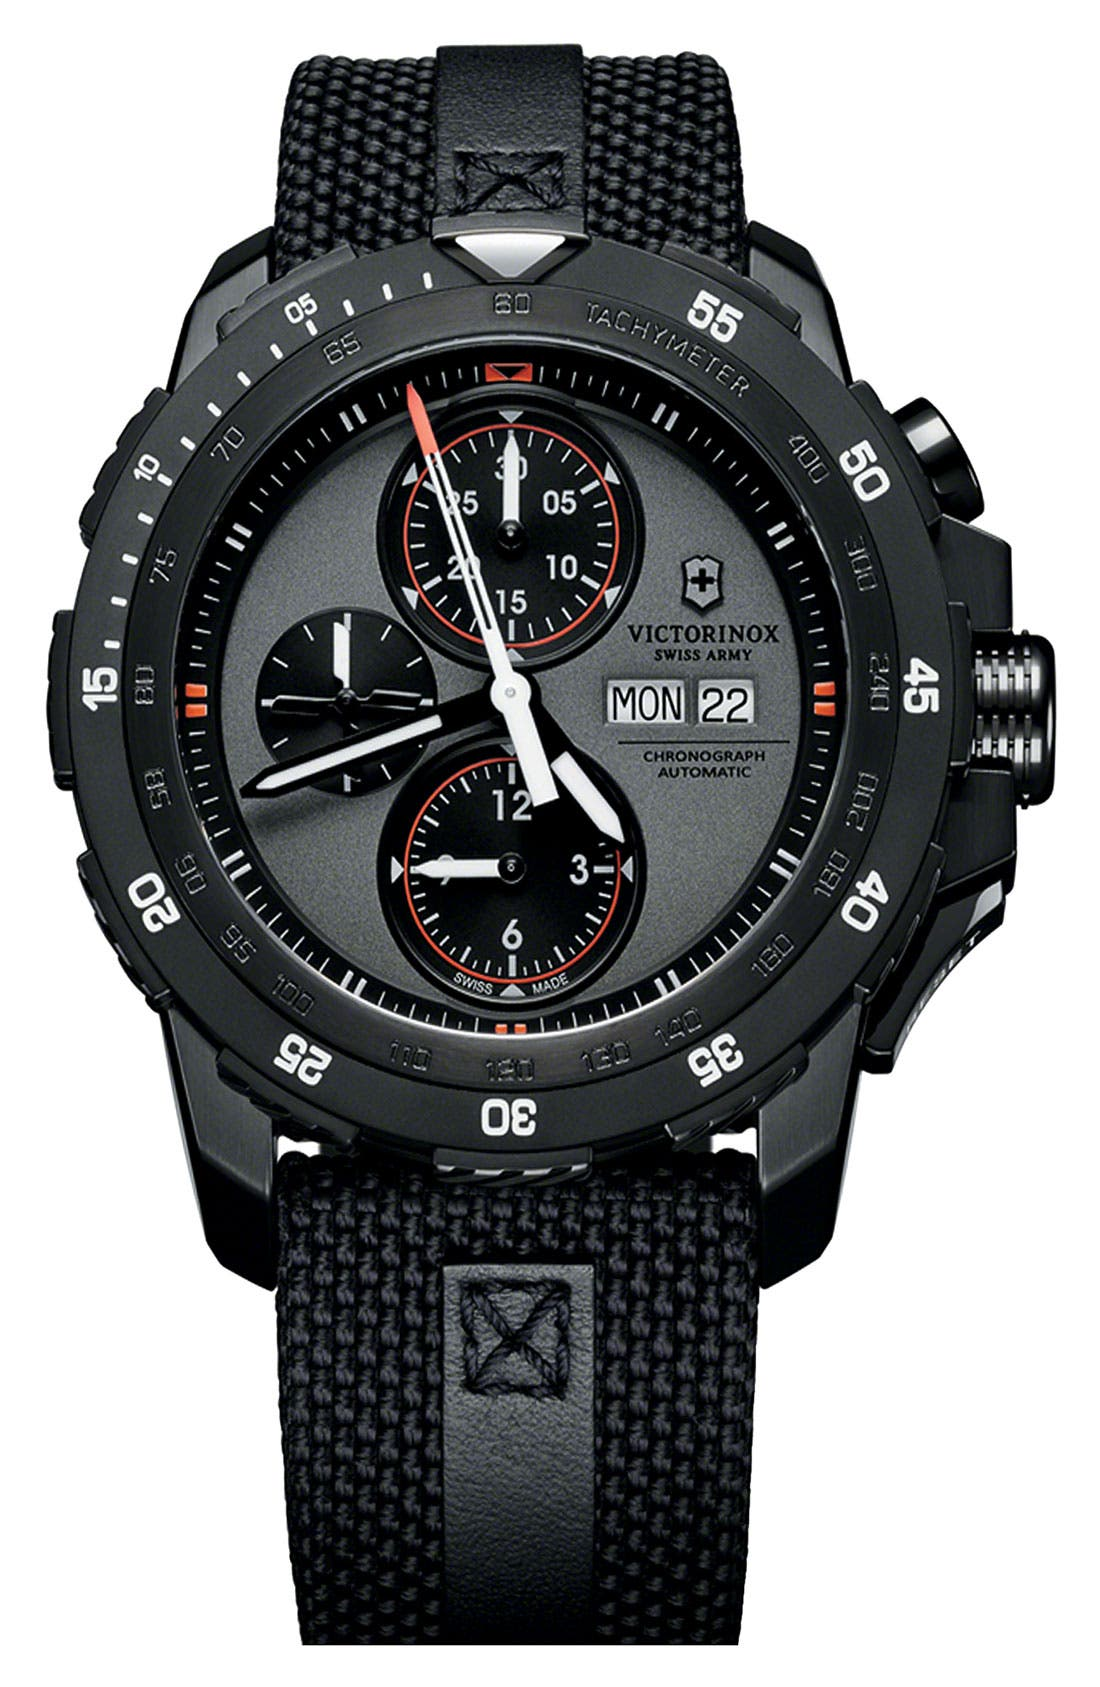 Alternate Image 1 Selected - Victorinox Swiss Army® 'Alpnach' Automatic Chronograph Watch, 44mm